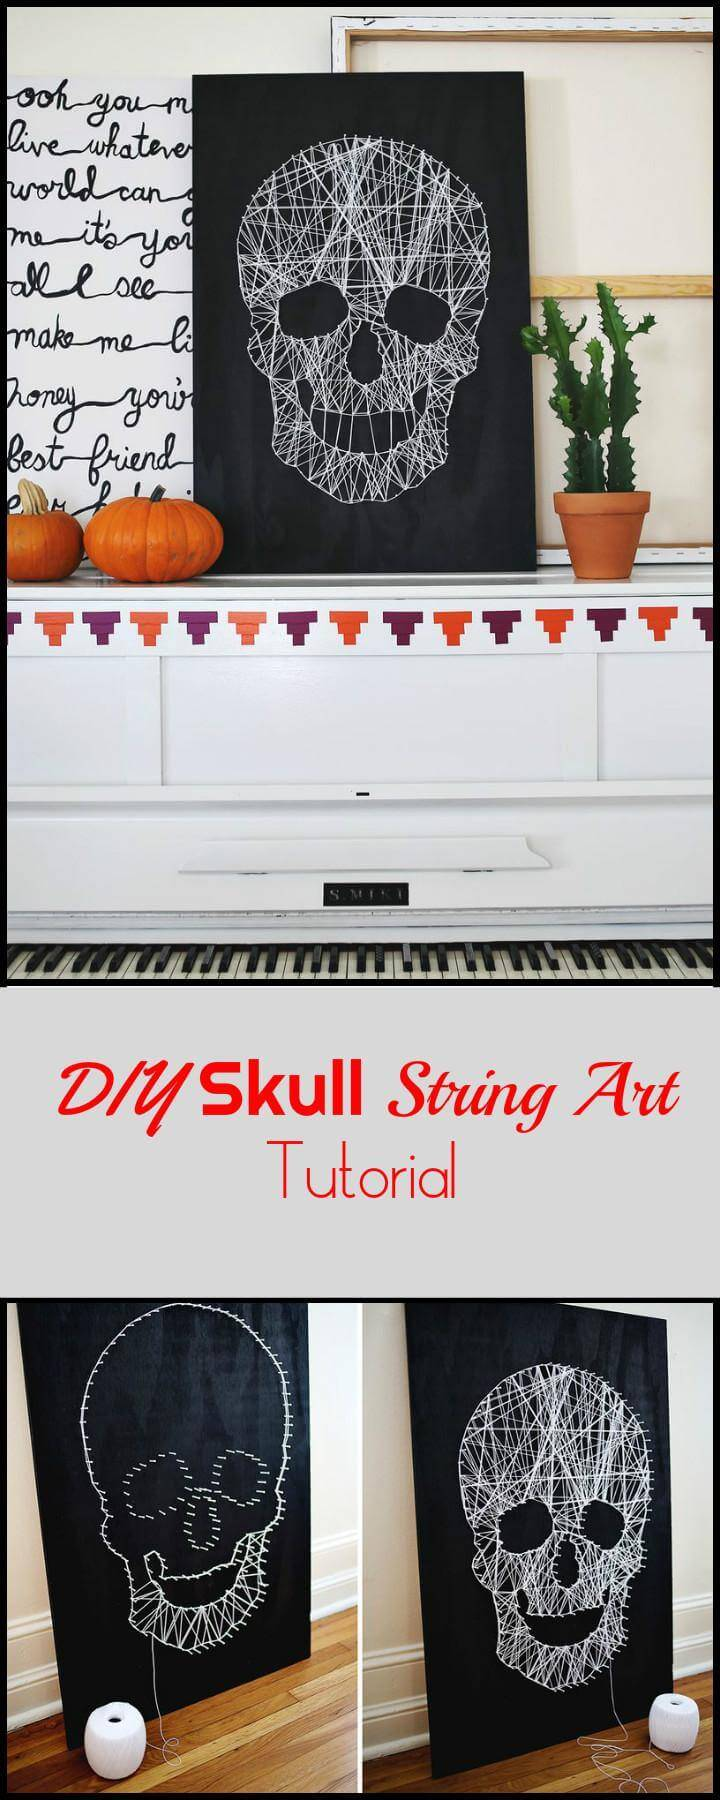 DIY Skull String Art Tutorial